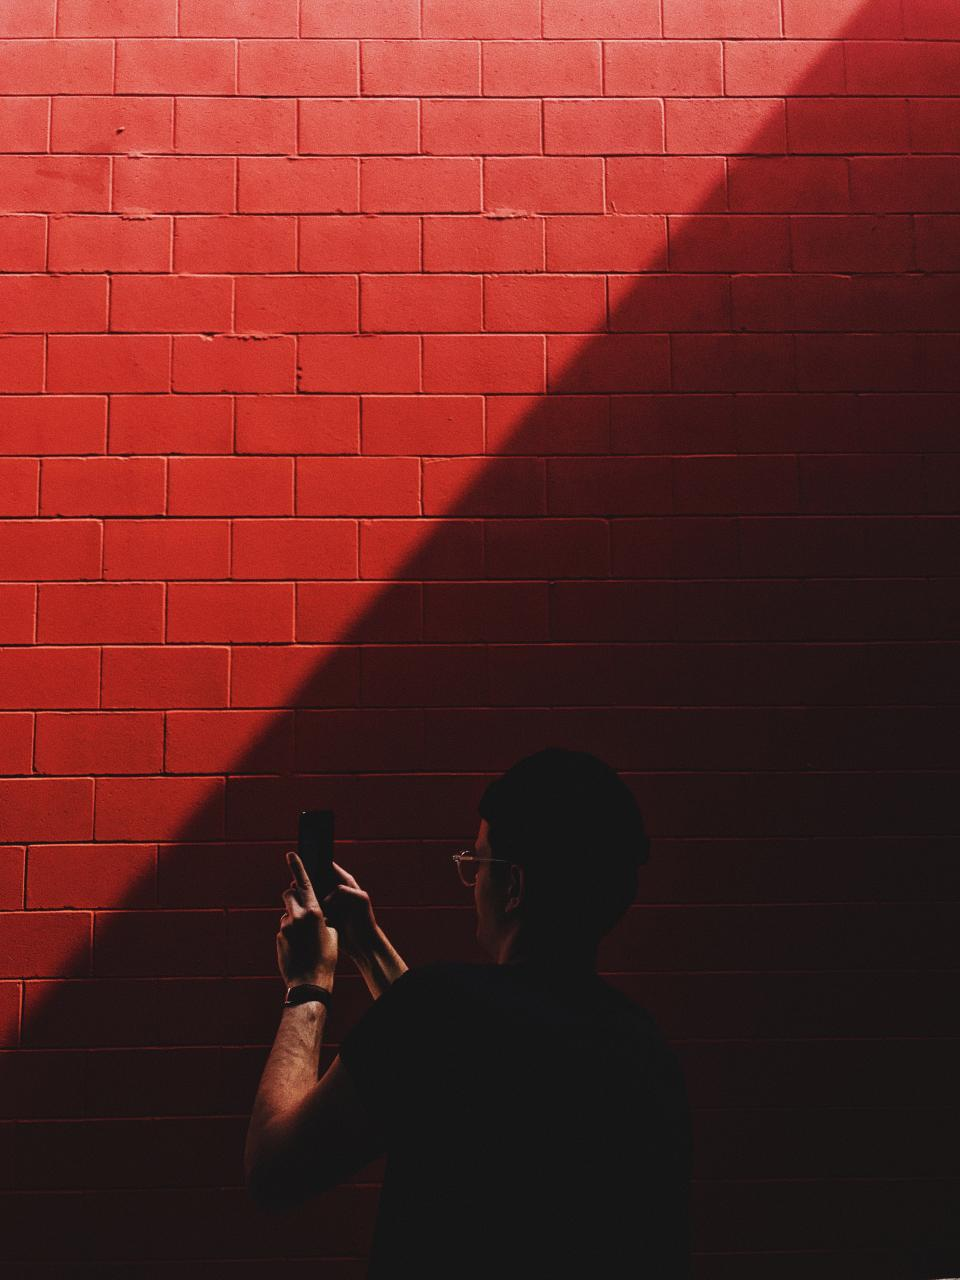 red wall sunlight dark people man guy mobile phone camera photography